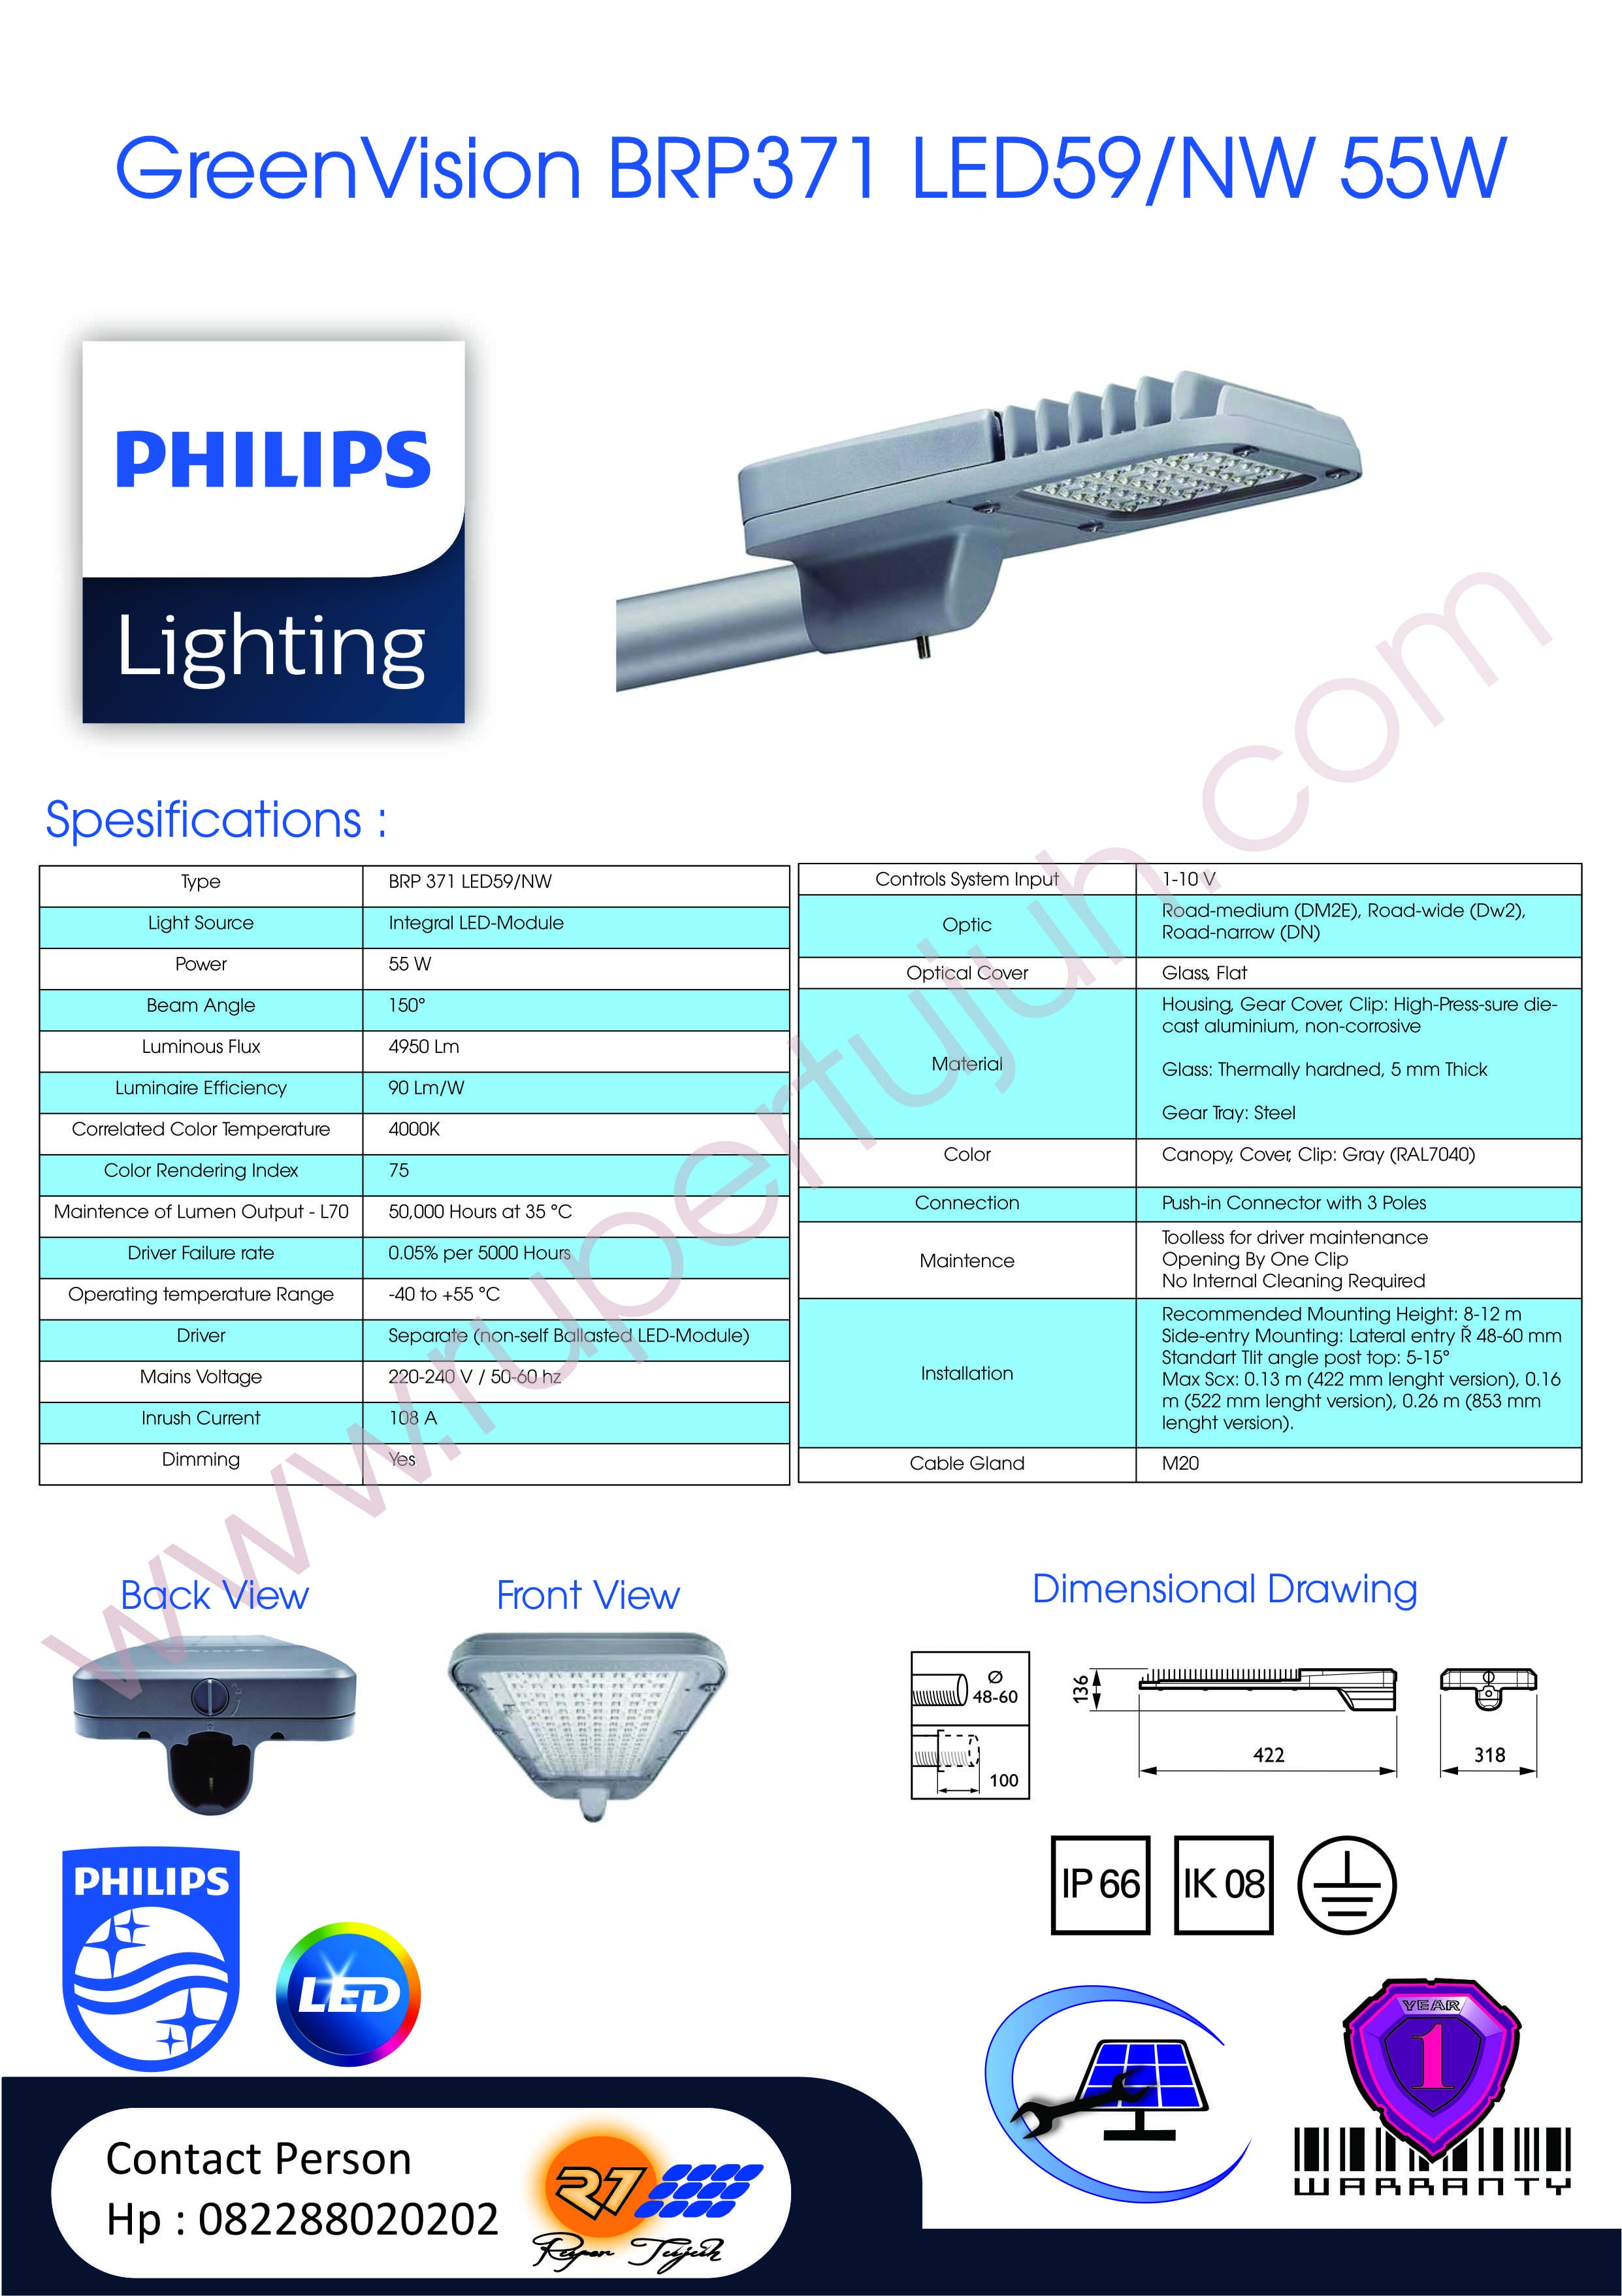 GreenVision BRP371 LED59/NW 55W 220-240V DM MP1